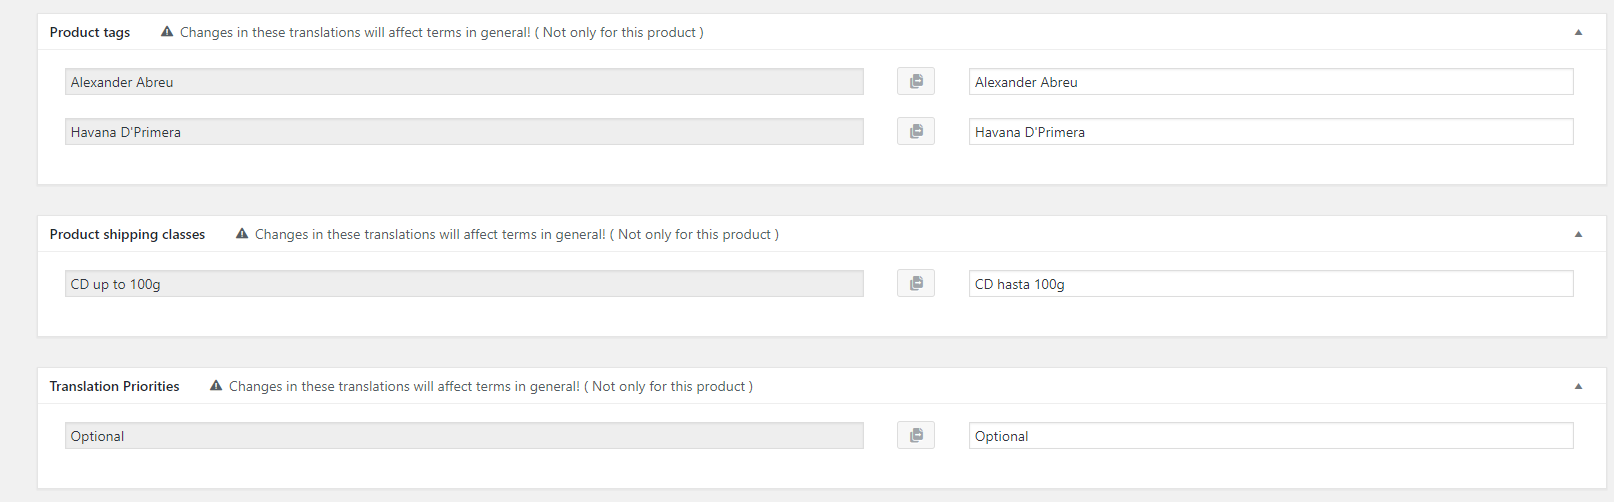 HDP product shipping classes translation.PNG